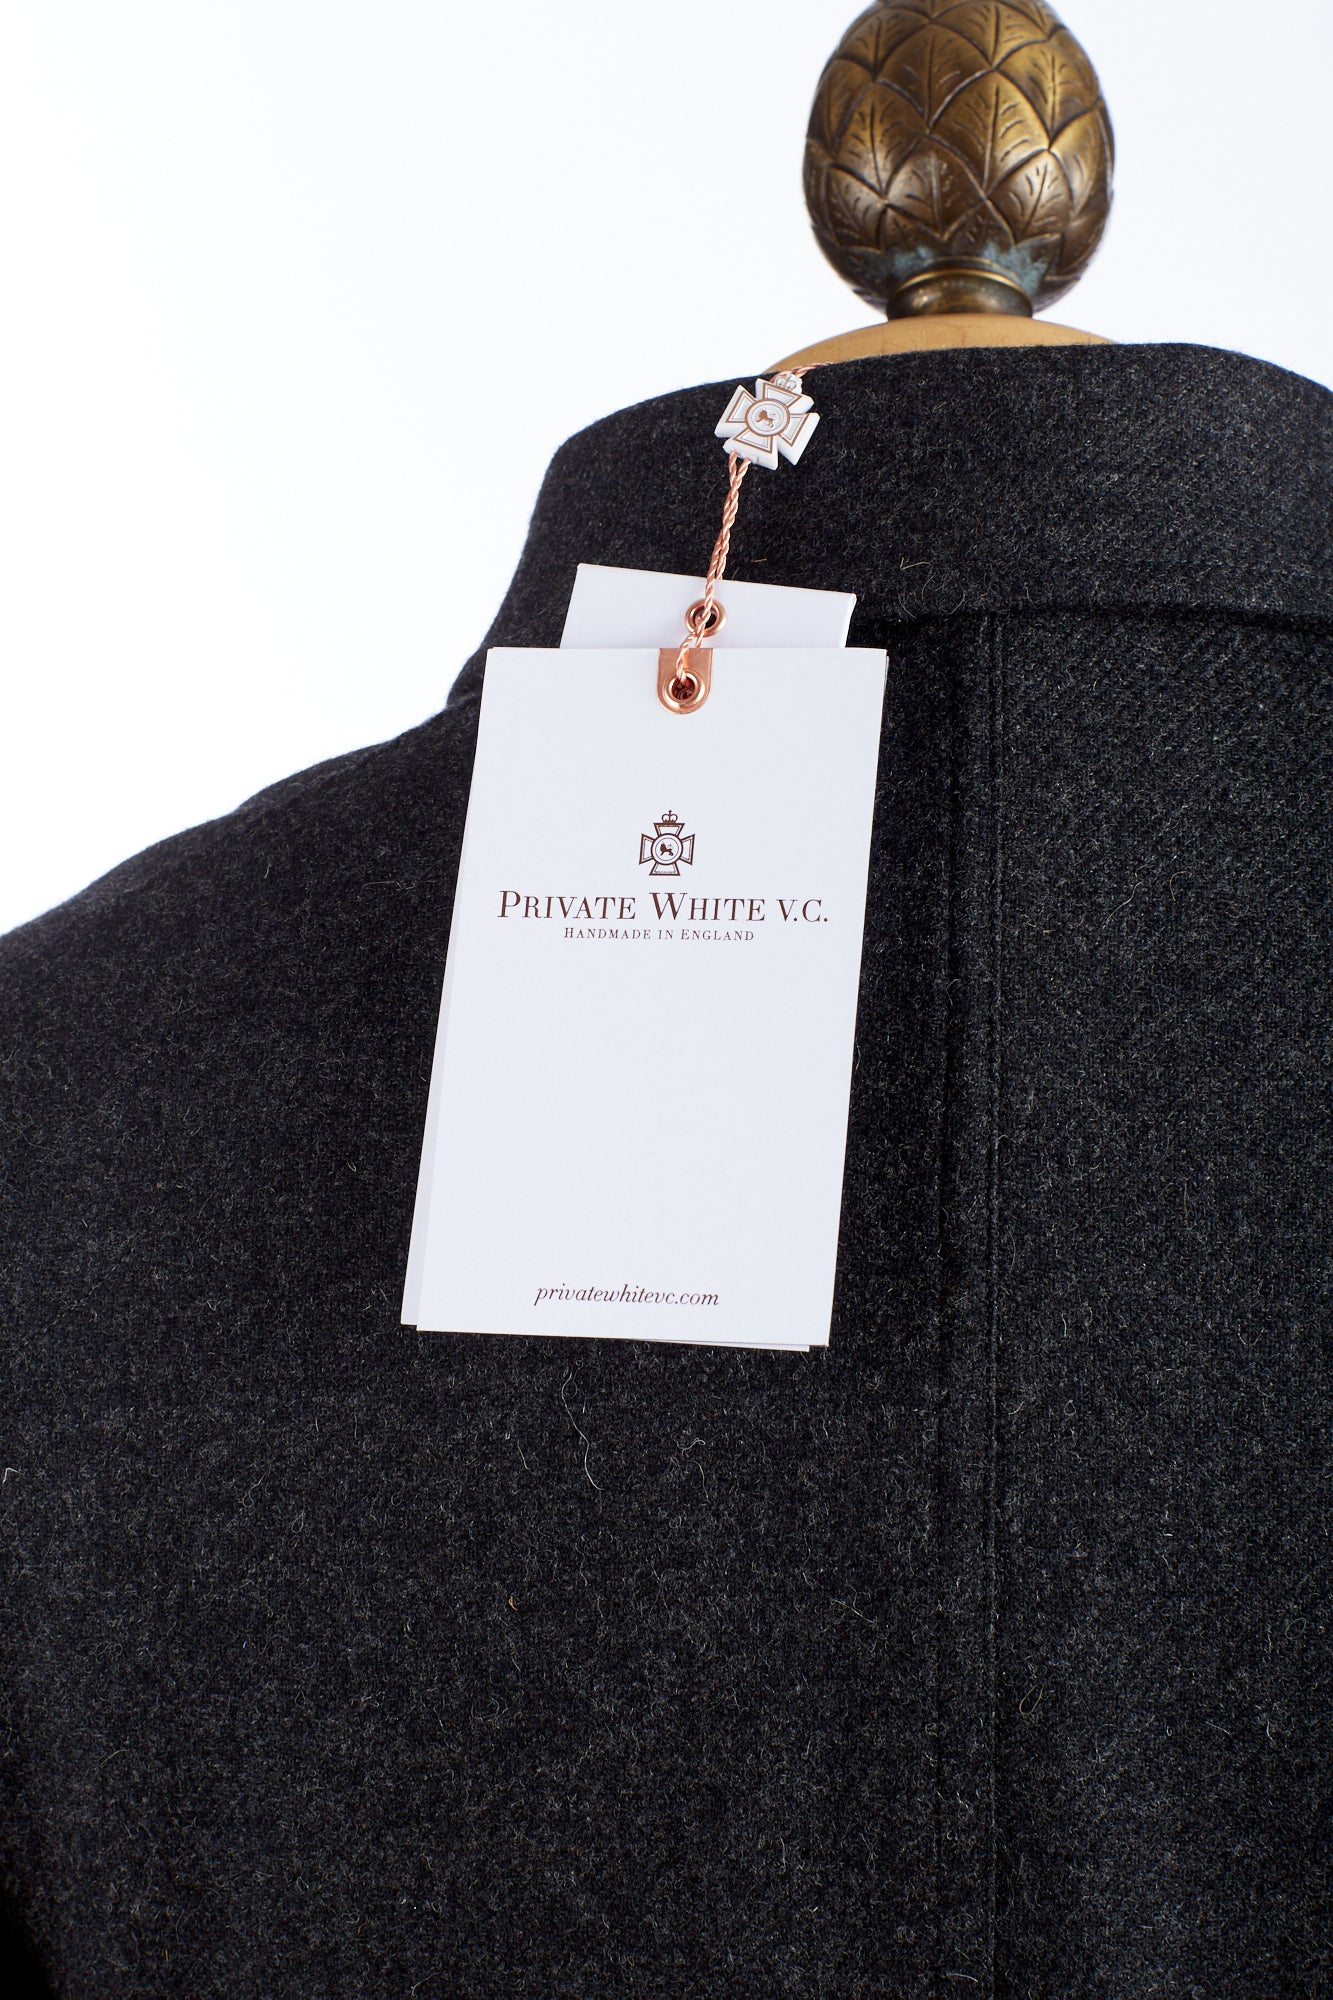 Private White V.C. Brand Tag